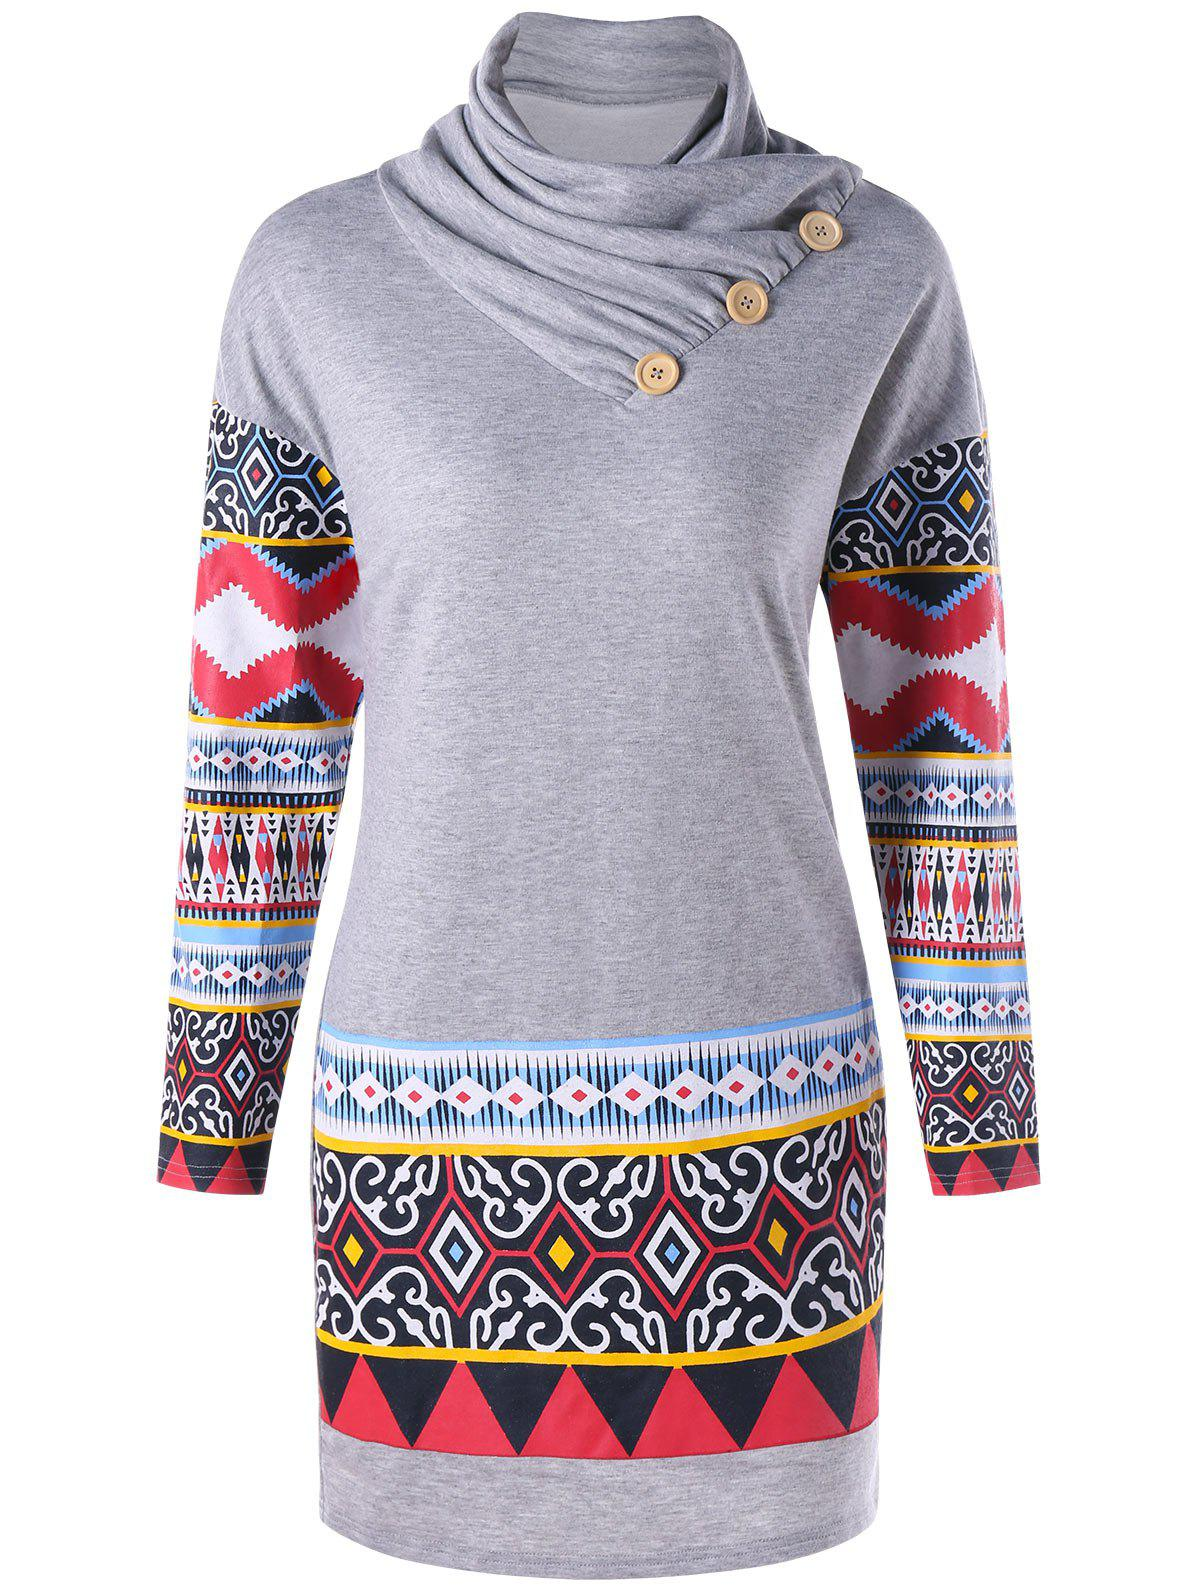 Heap Collar Ethnic Print Long Sleeve DressWOMEN<br><br>Size: 2XL; Color: GRAY; Style: Casual; Material: Cotton,Polyester,Spandex; Silhouette: Bodycon; Dresses Length: Mini; Neckline: Heaps Collar; Sleeve Length: Long Sleeves; Pattern Type: Tribal Print; With Belt: No; Season: Fall,Spring; Weight: 0.4660kg; Package Contents: 1 x Dress; Occasion: Casual;